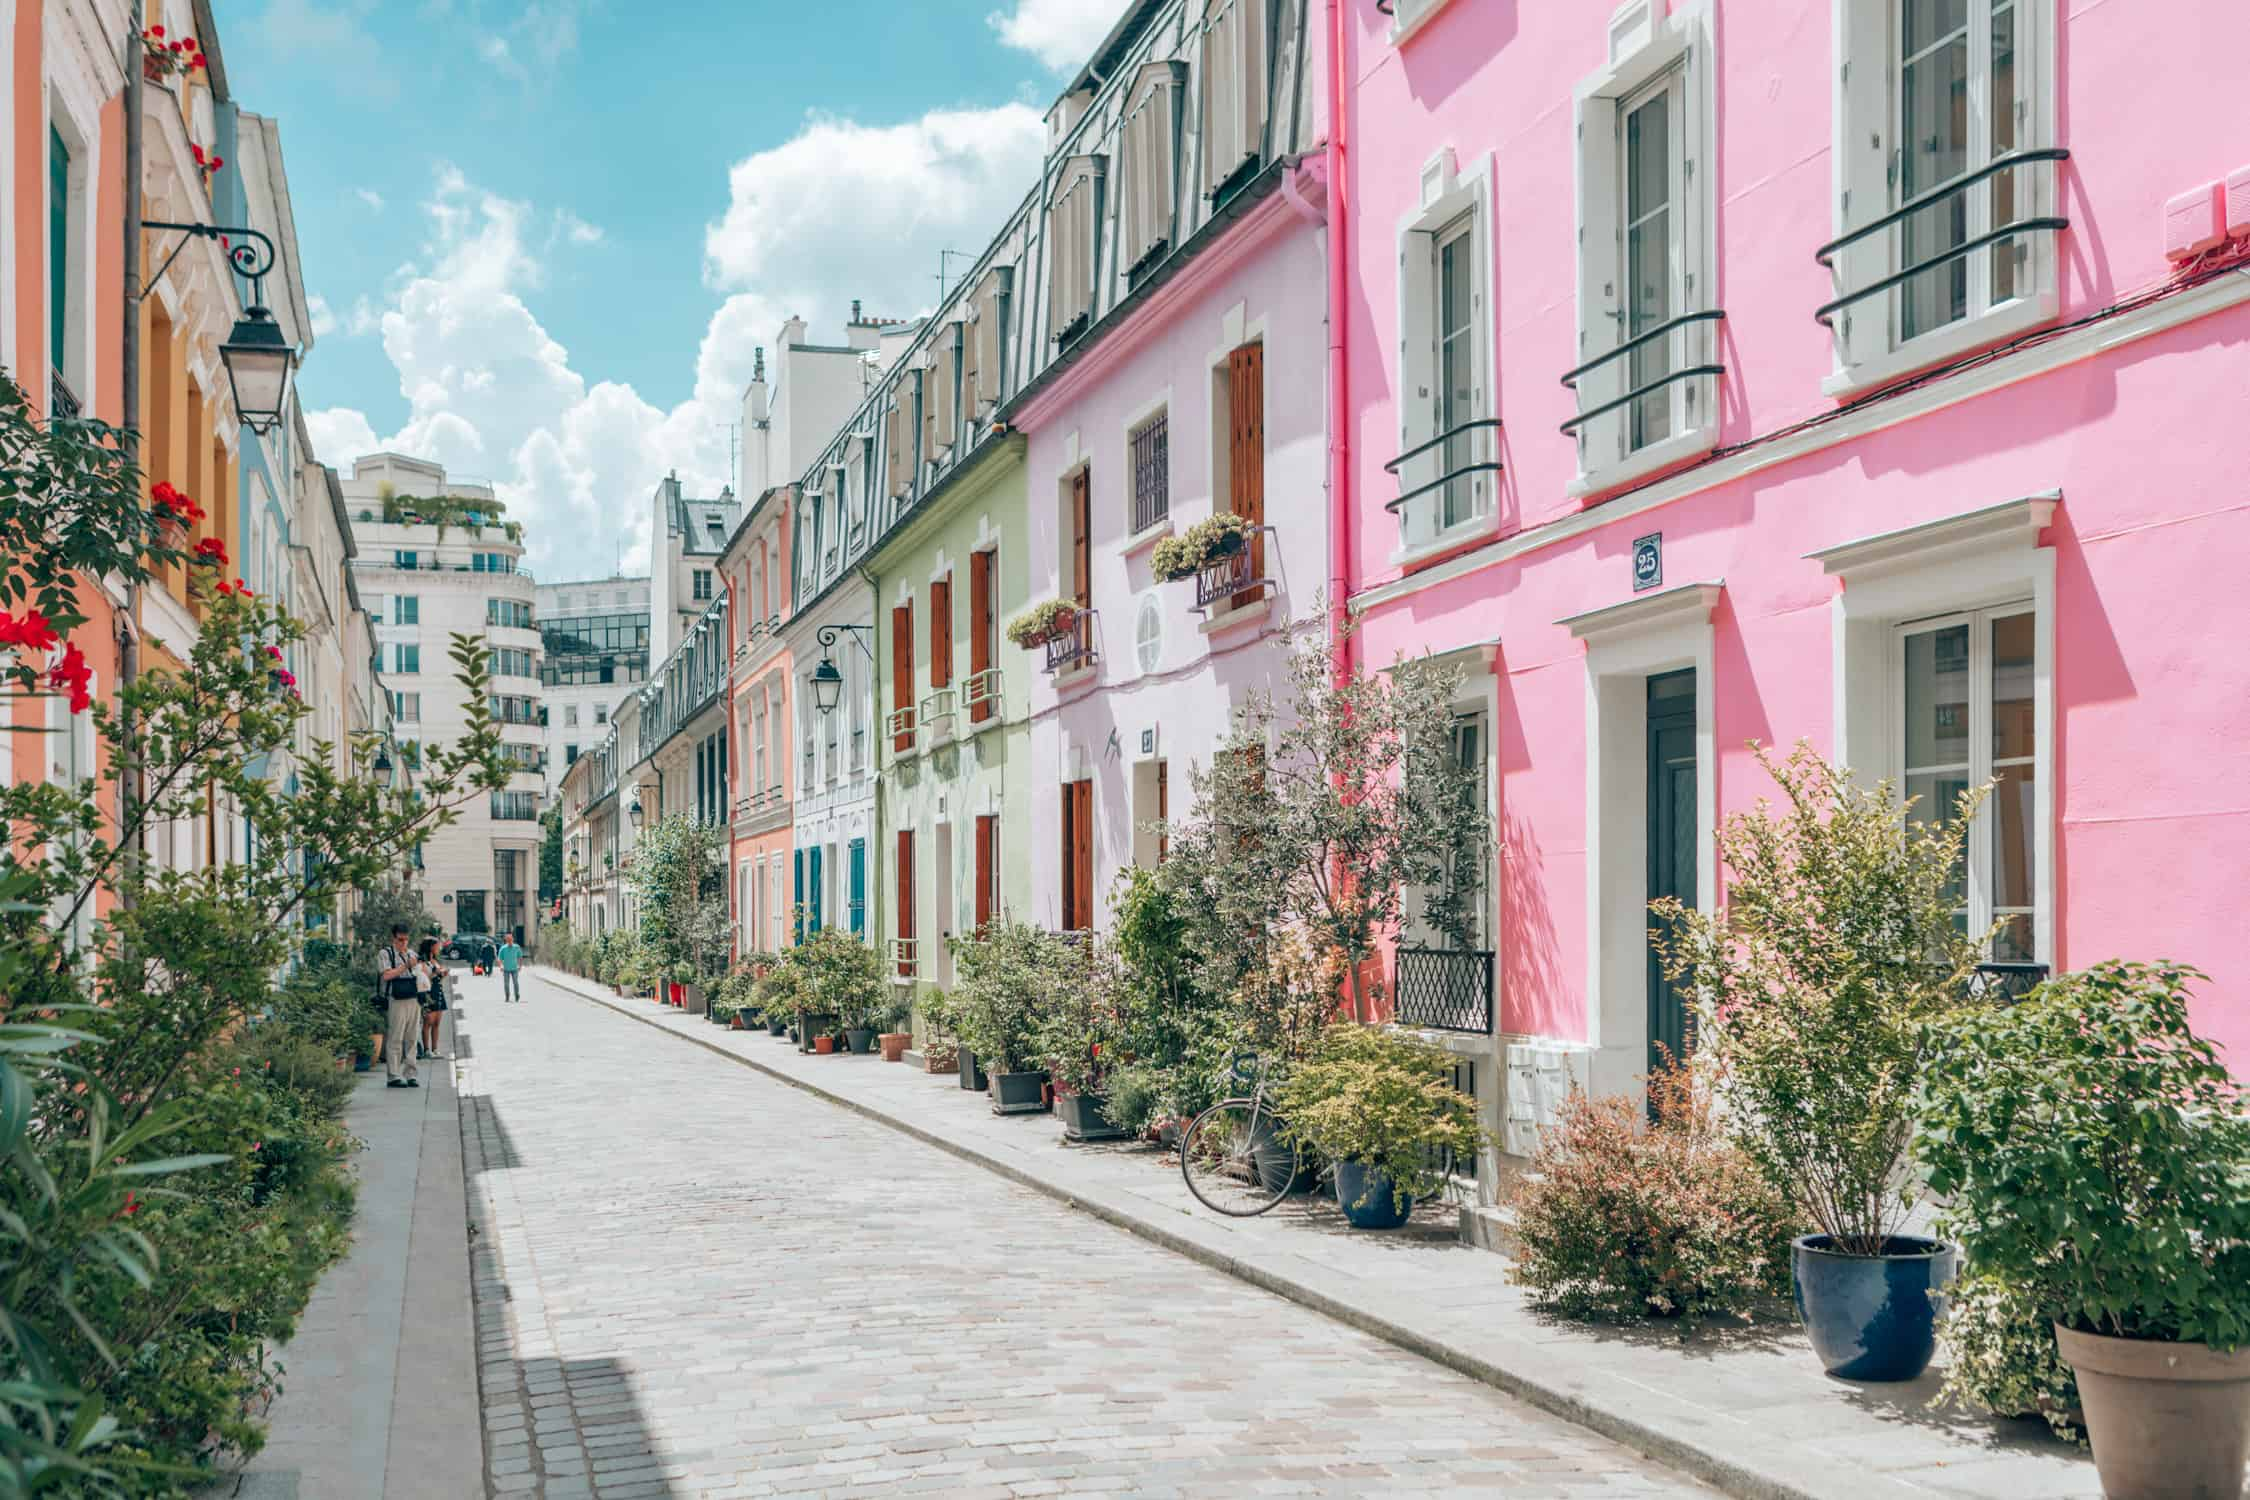 Best Instagram places in Paris | Paris photography spots